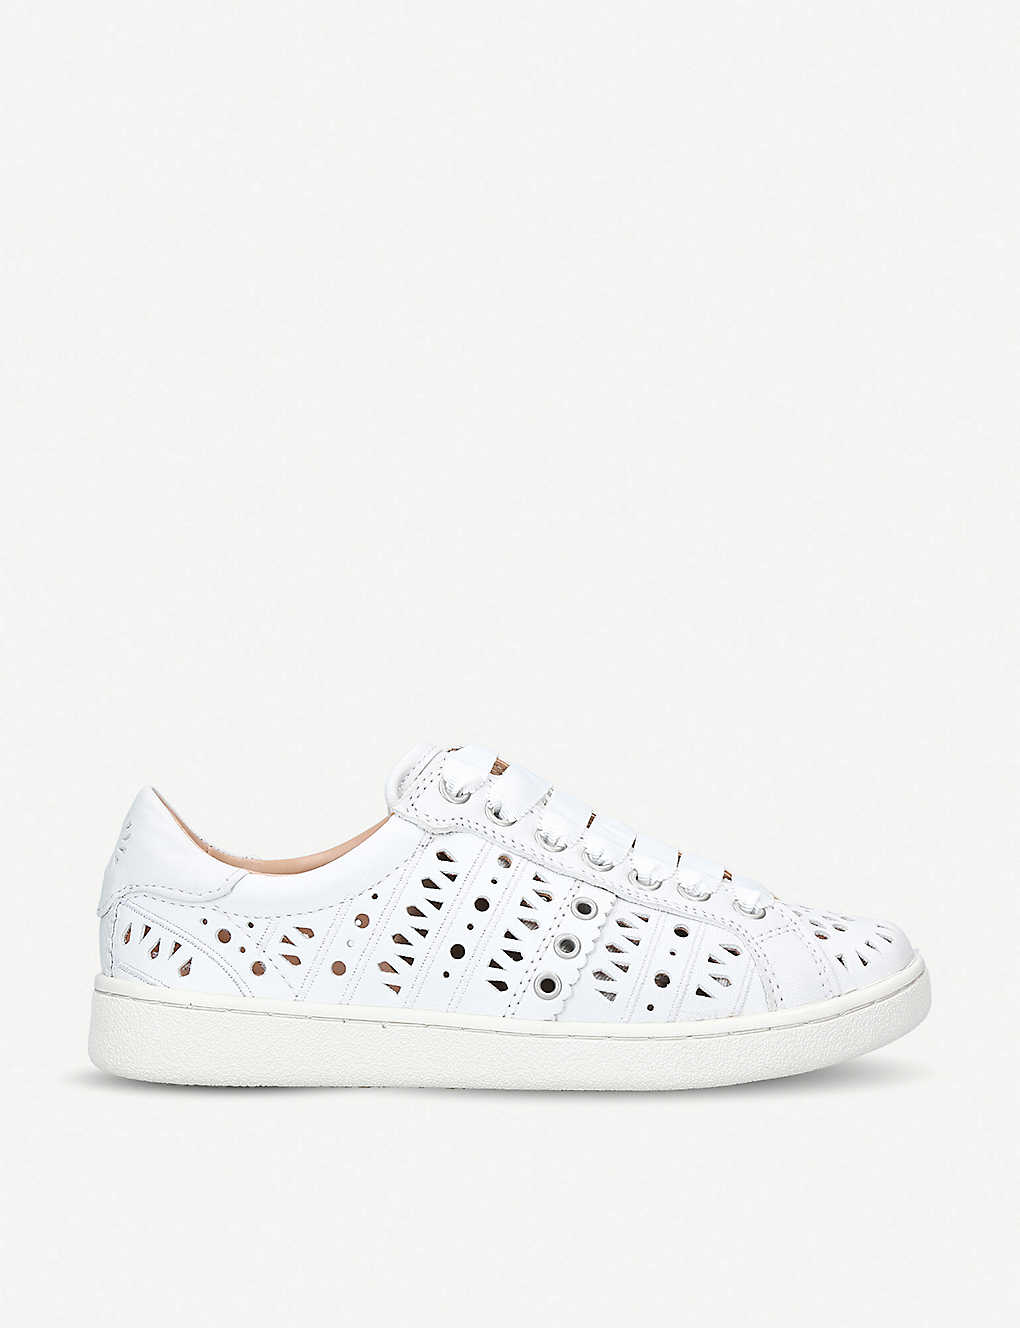 a1df80c696b UGG - Milo perforated leather trainers   Selfridges.com